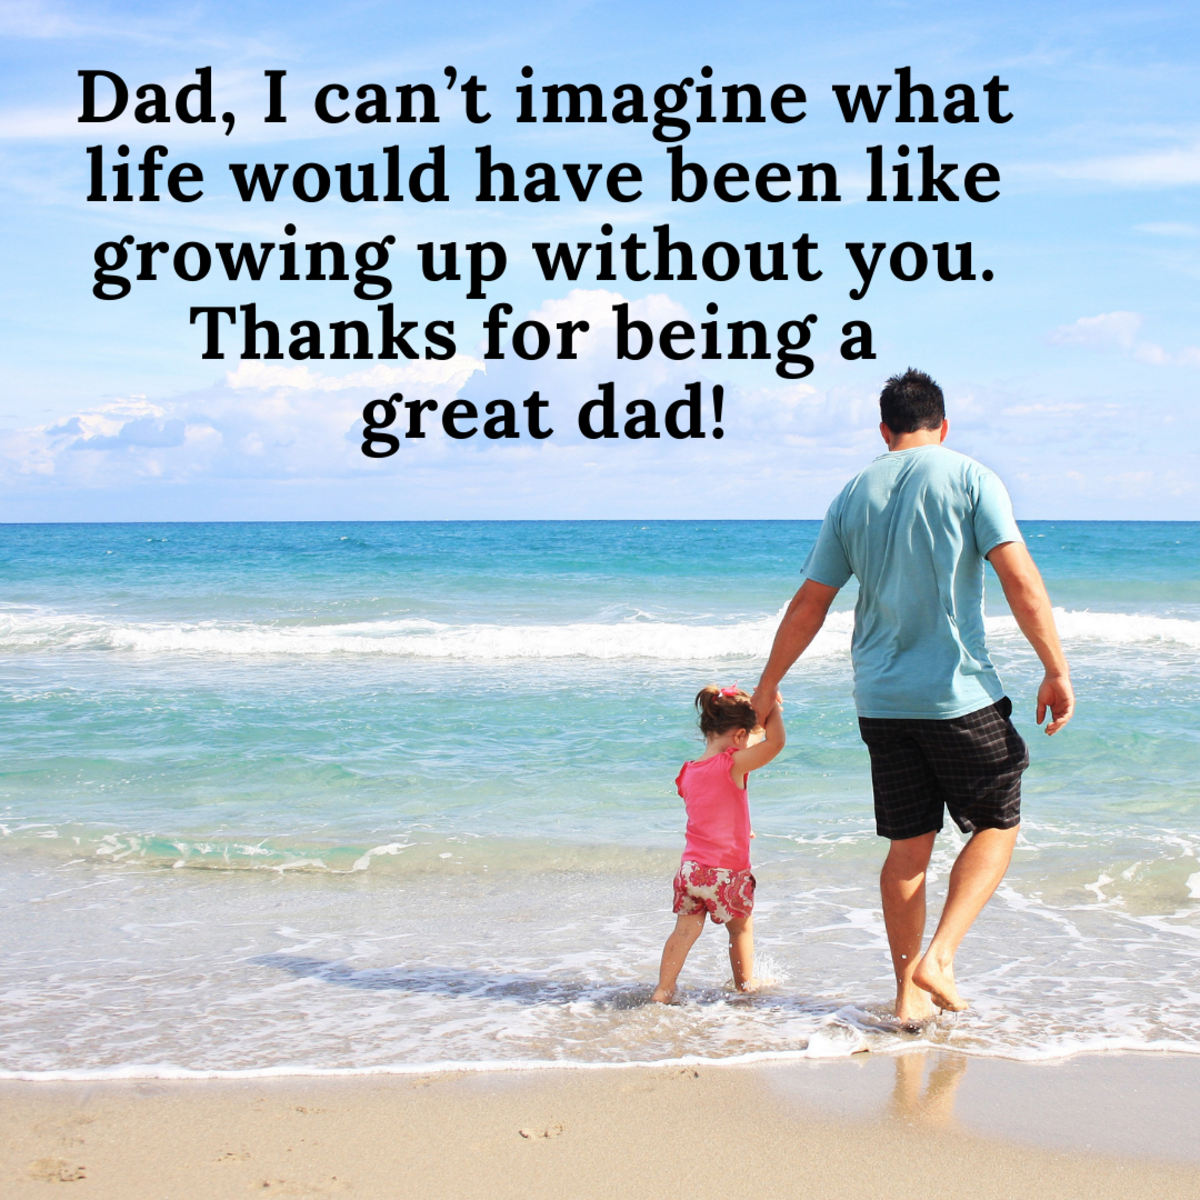 Dads always love a sweet message on Father's Day.